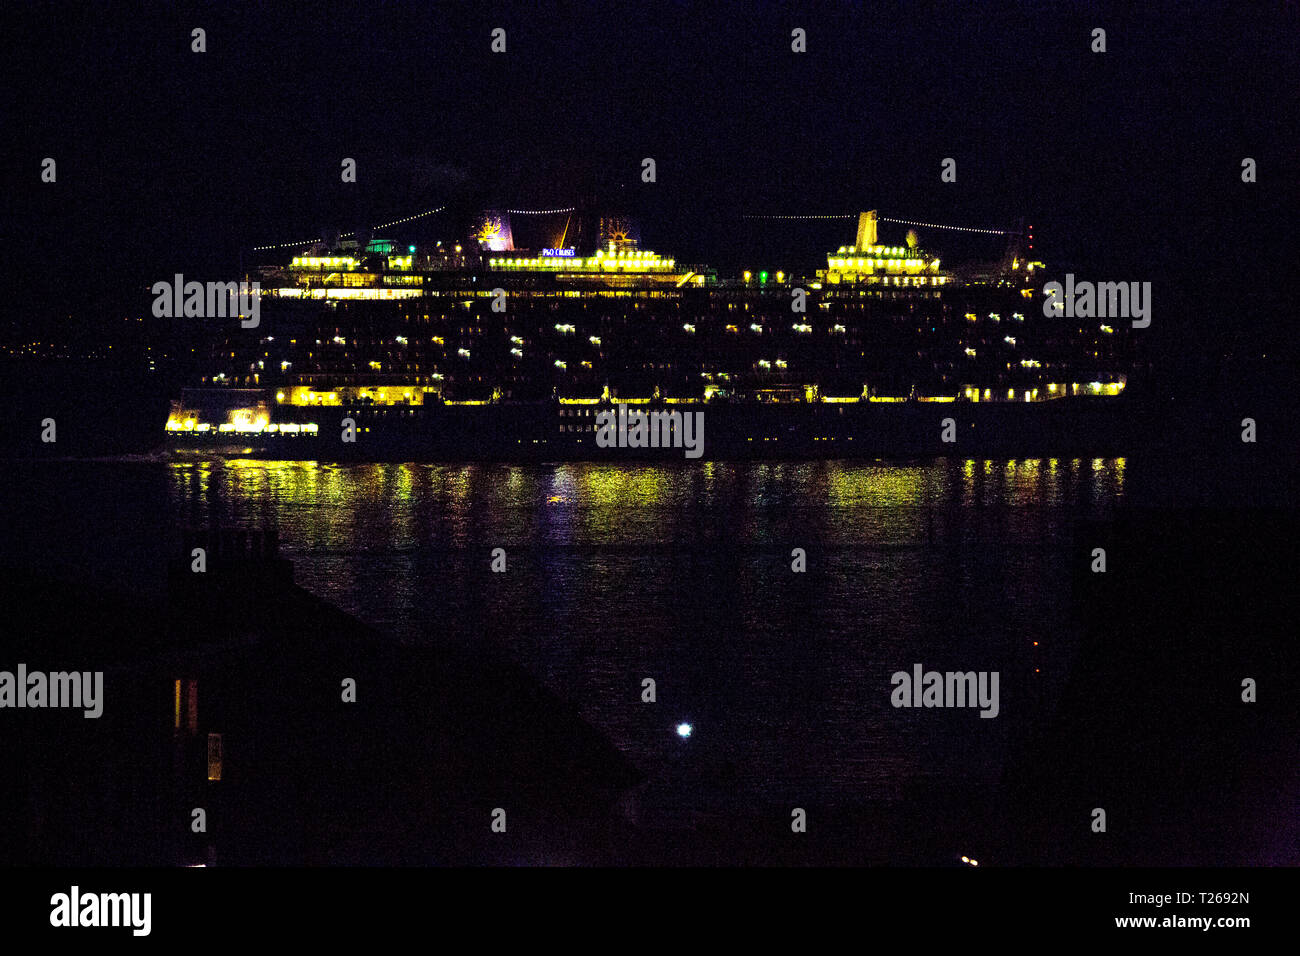 La pollution, le SMC Bellissima.,Sophia Loren,croisière,de,nuit, Southampton, Cowes, île de Wight, Angleterre,UK, Photo Stock